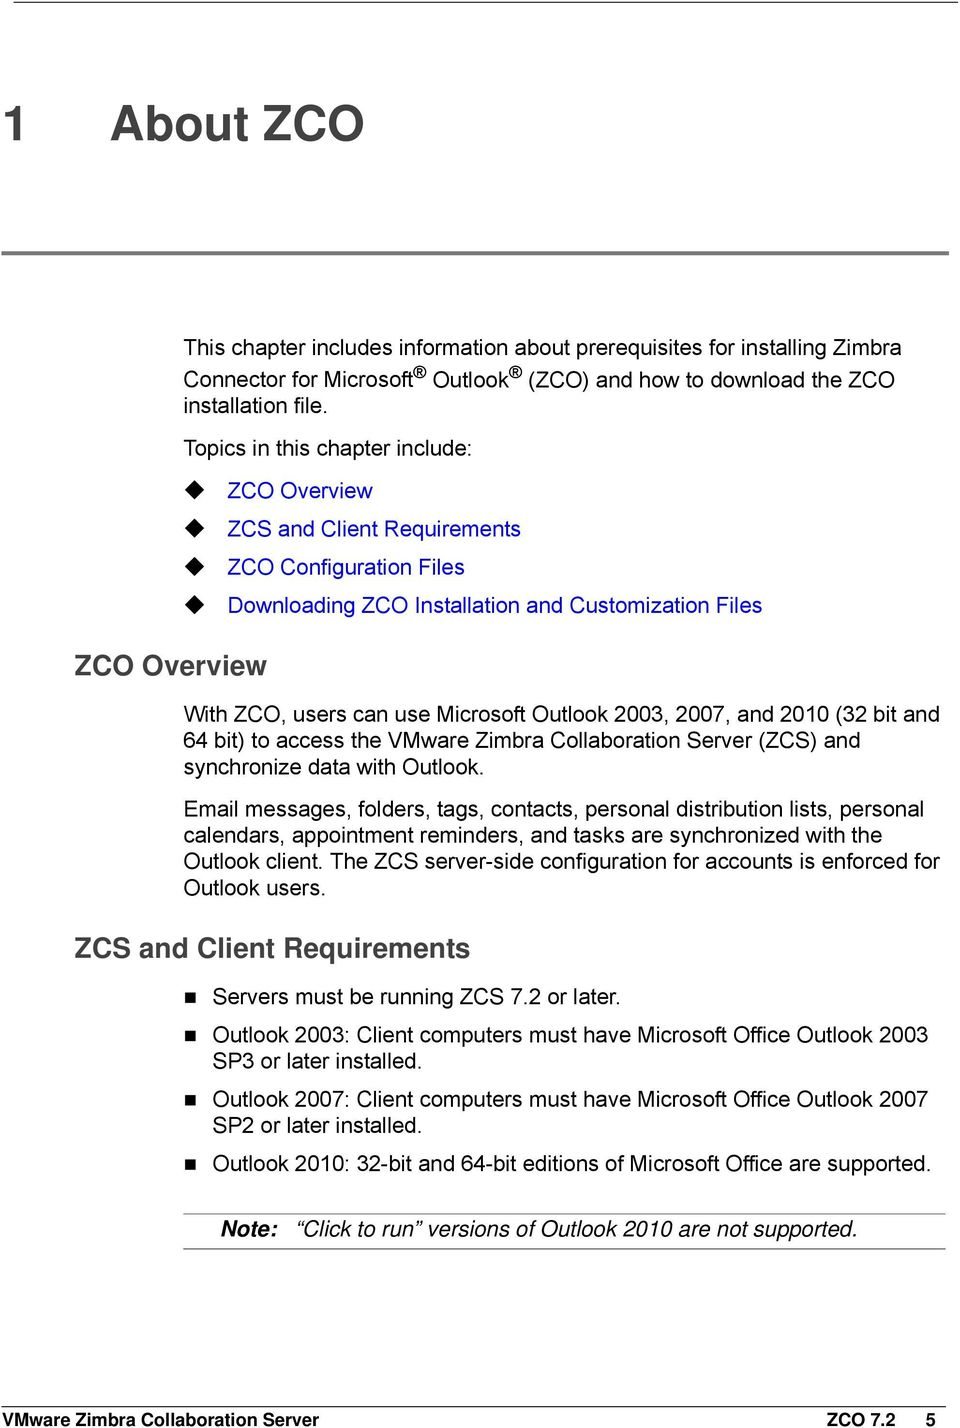 2007, and 2010 (32 bit and 64 bit) to access the VMware Zimbra Collaboration Server (ZCS) and synchronize data with Outlook.